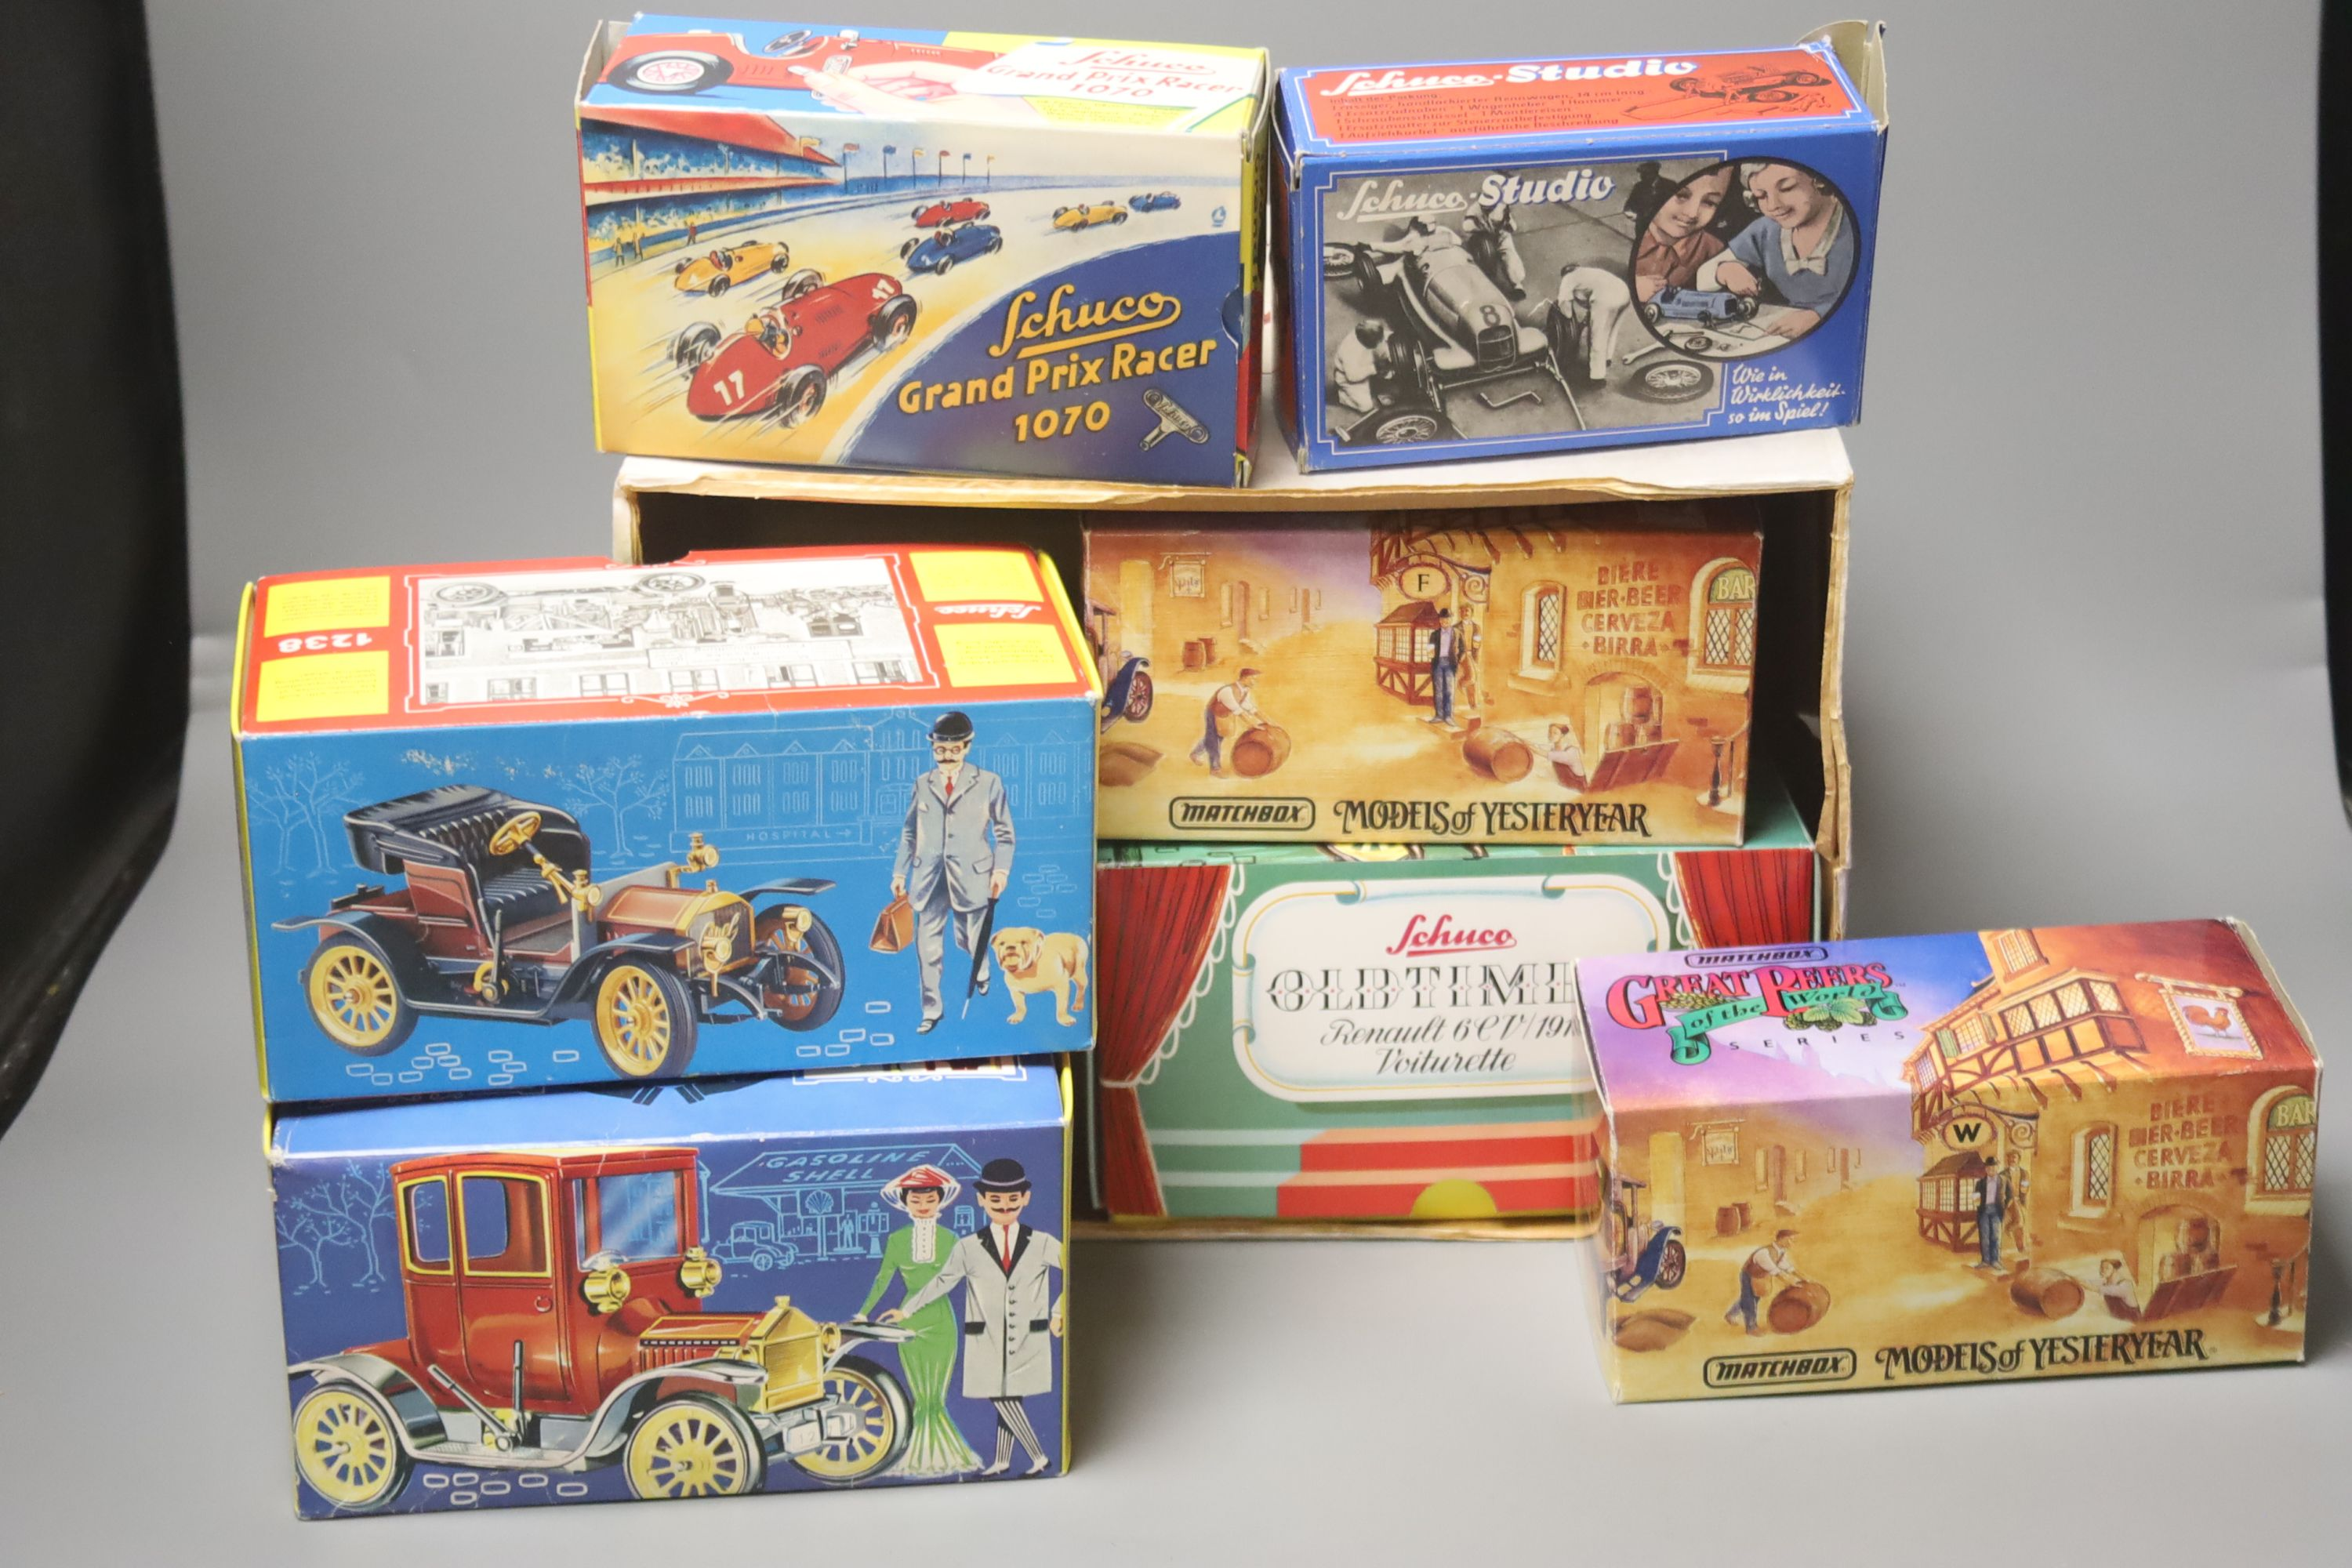 A Schuco Grand Prix Racer 1070, a Schuco Studio No. 1050, three others and two Matchbox vehicles